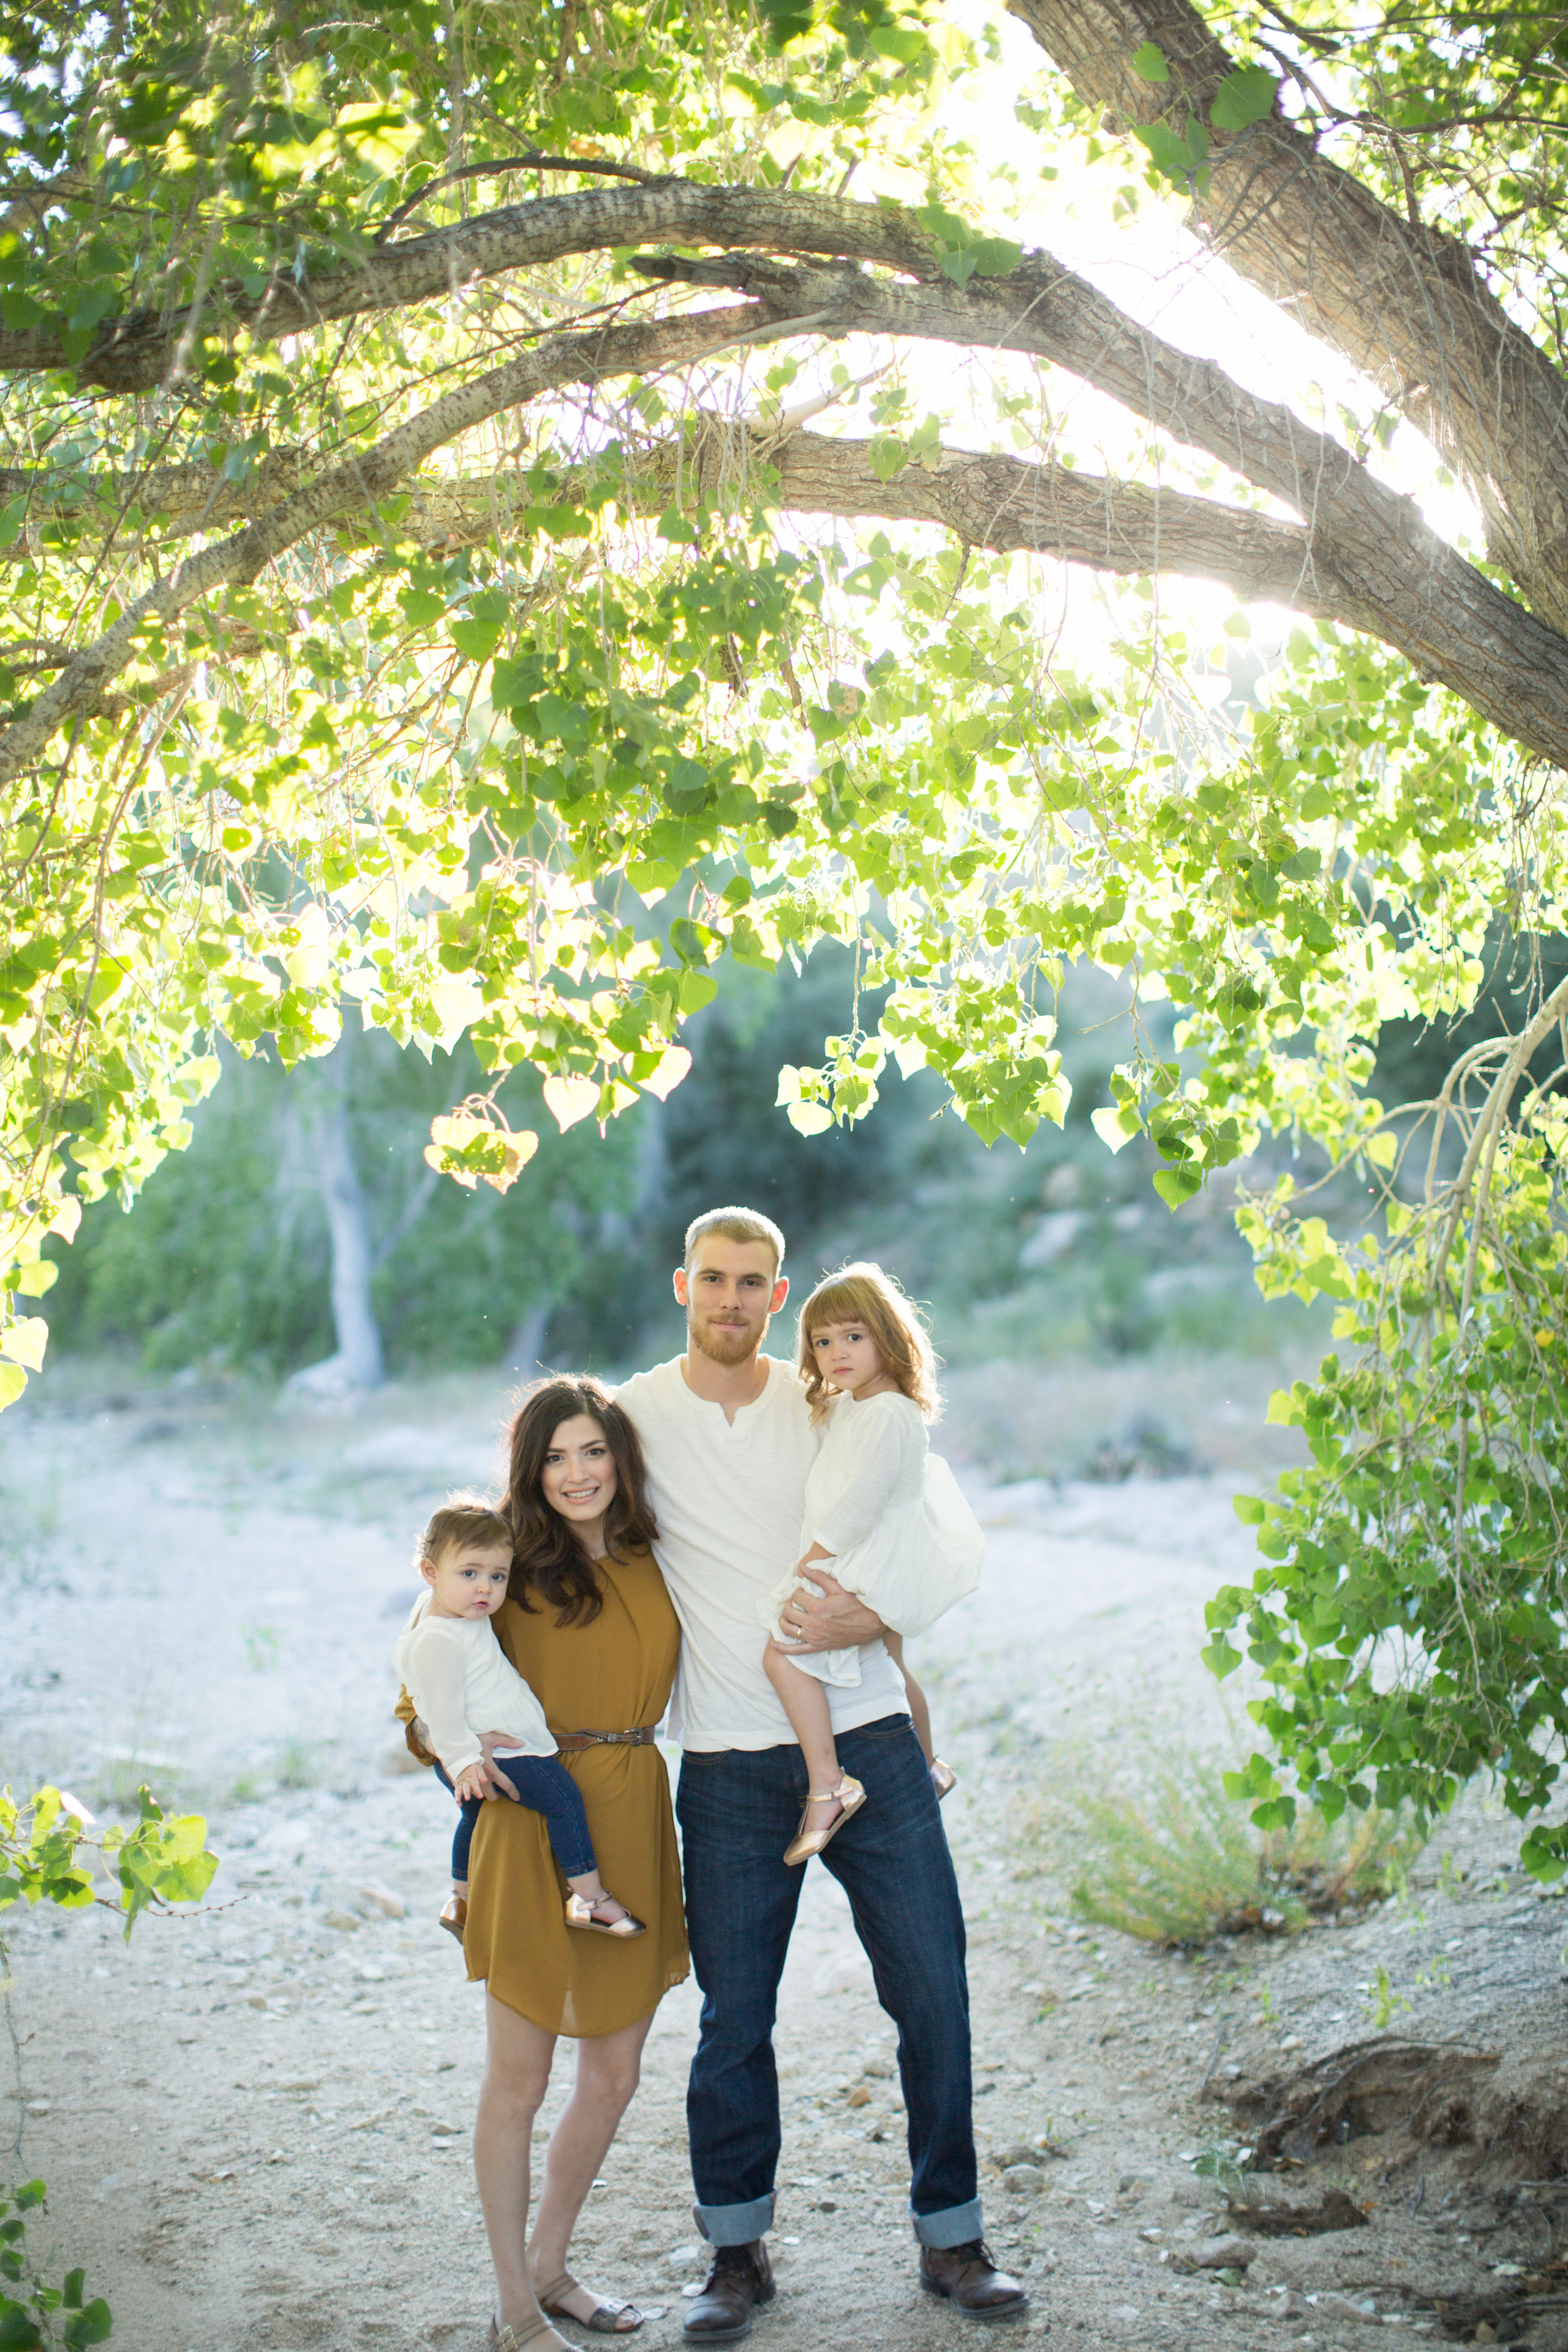 My intention is defined by the love of my family. Family is my priority, family is my happiness.